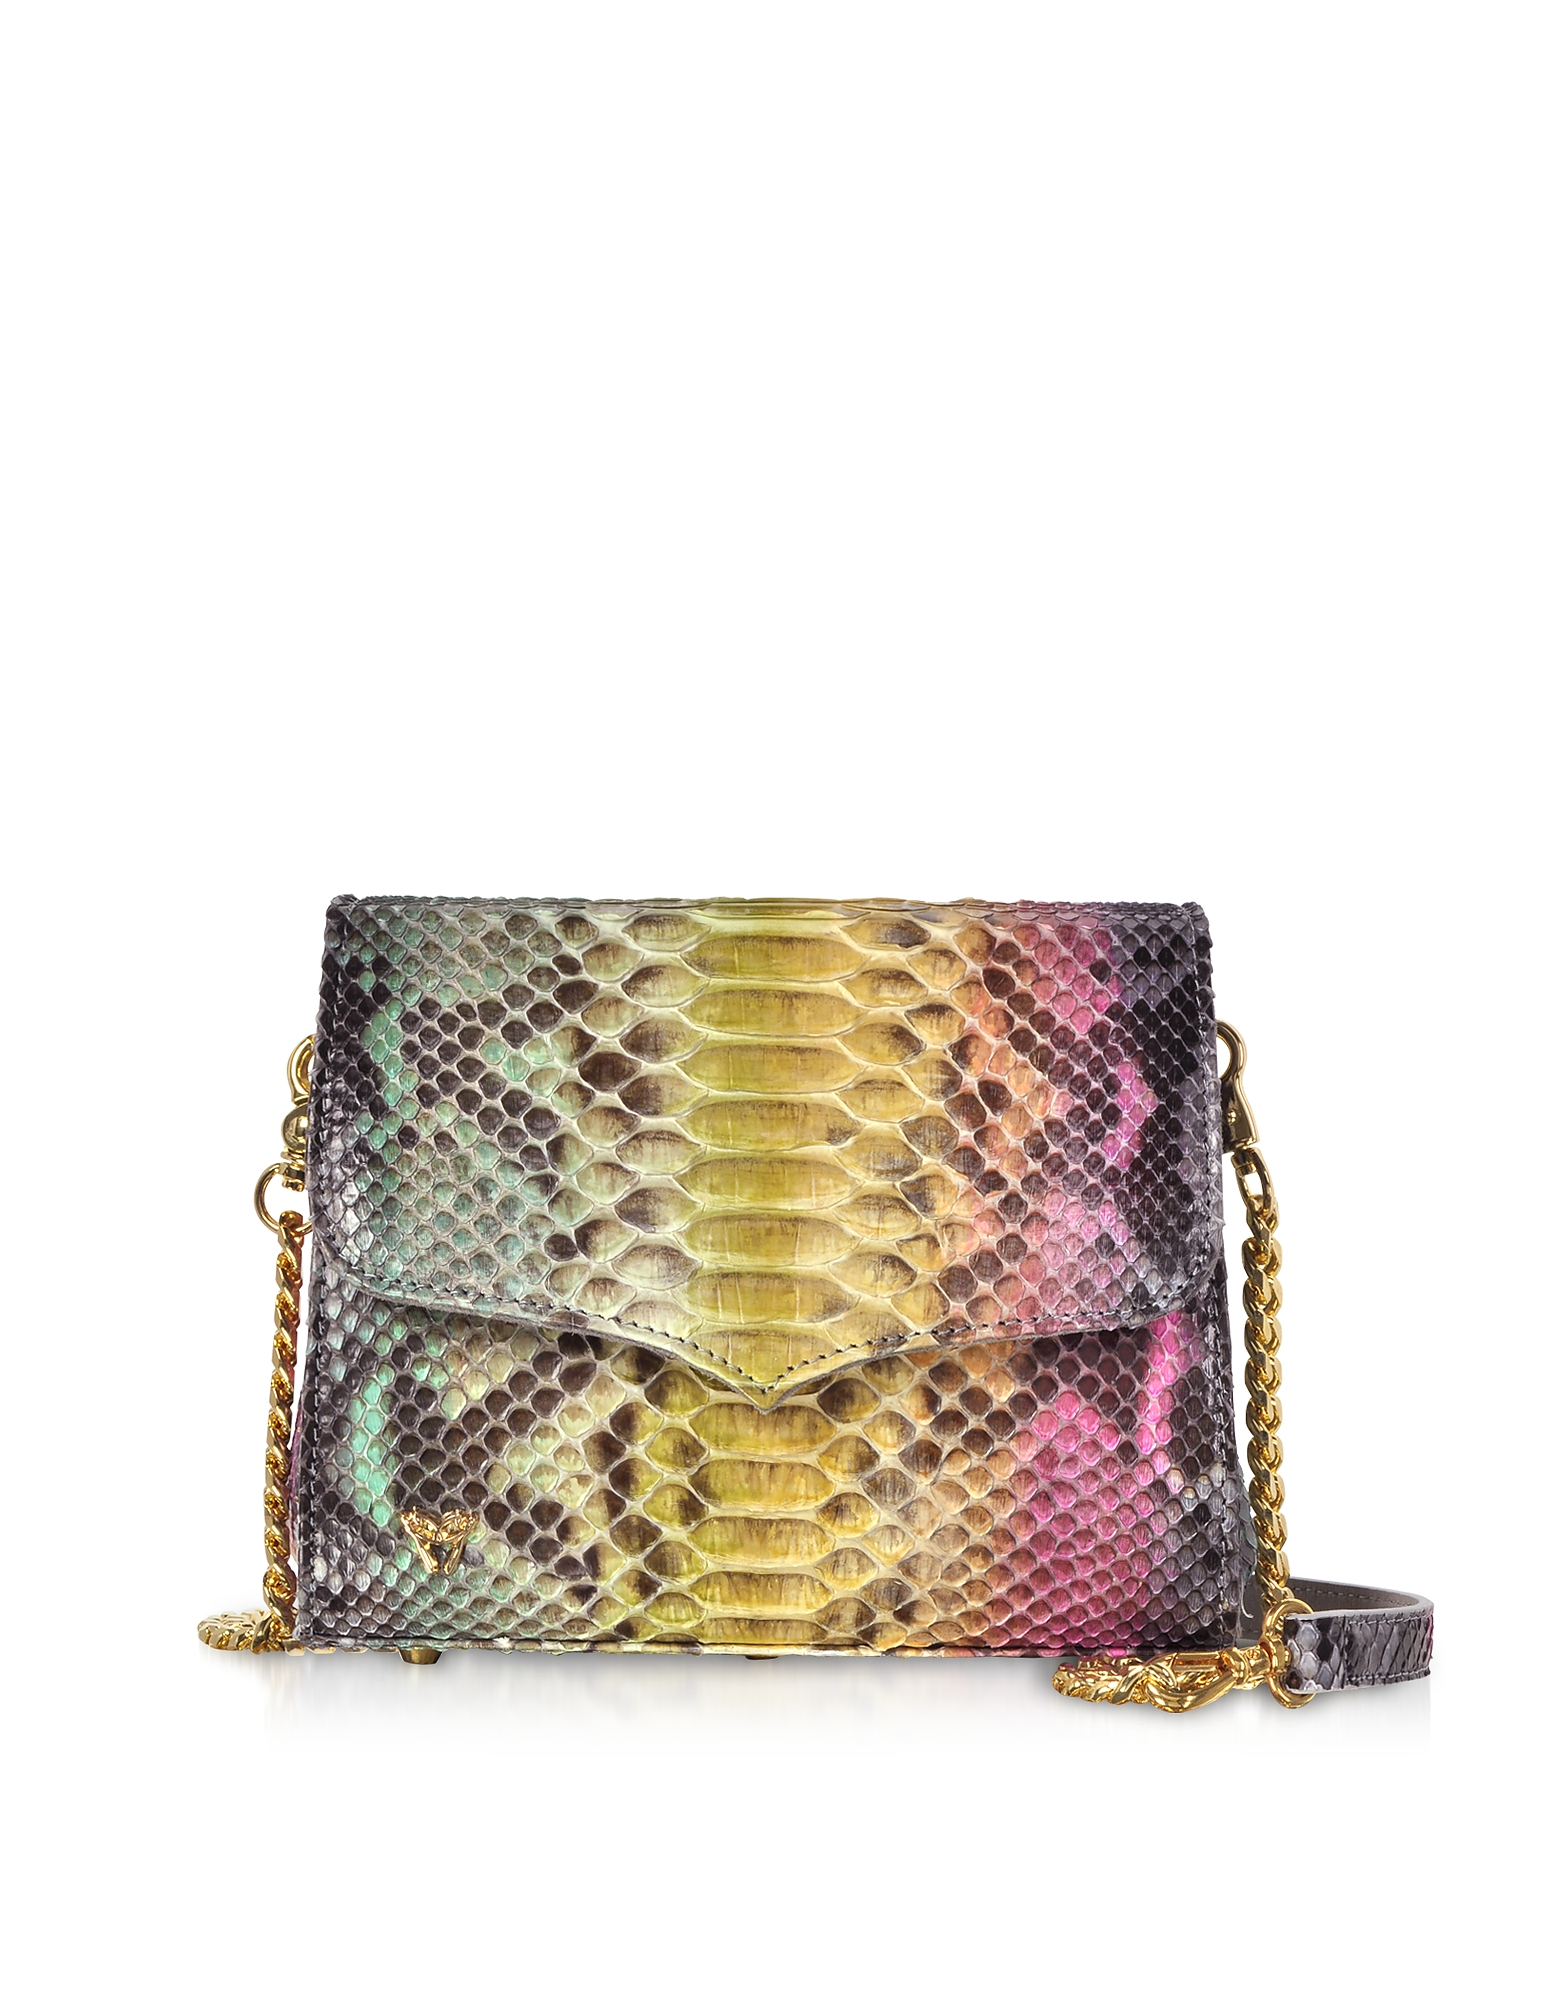 Multicolor Python Leather Shoulder Bag